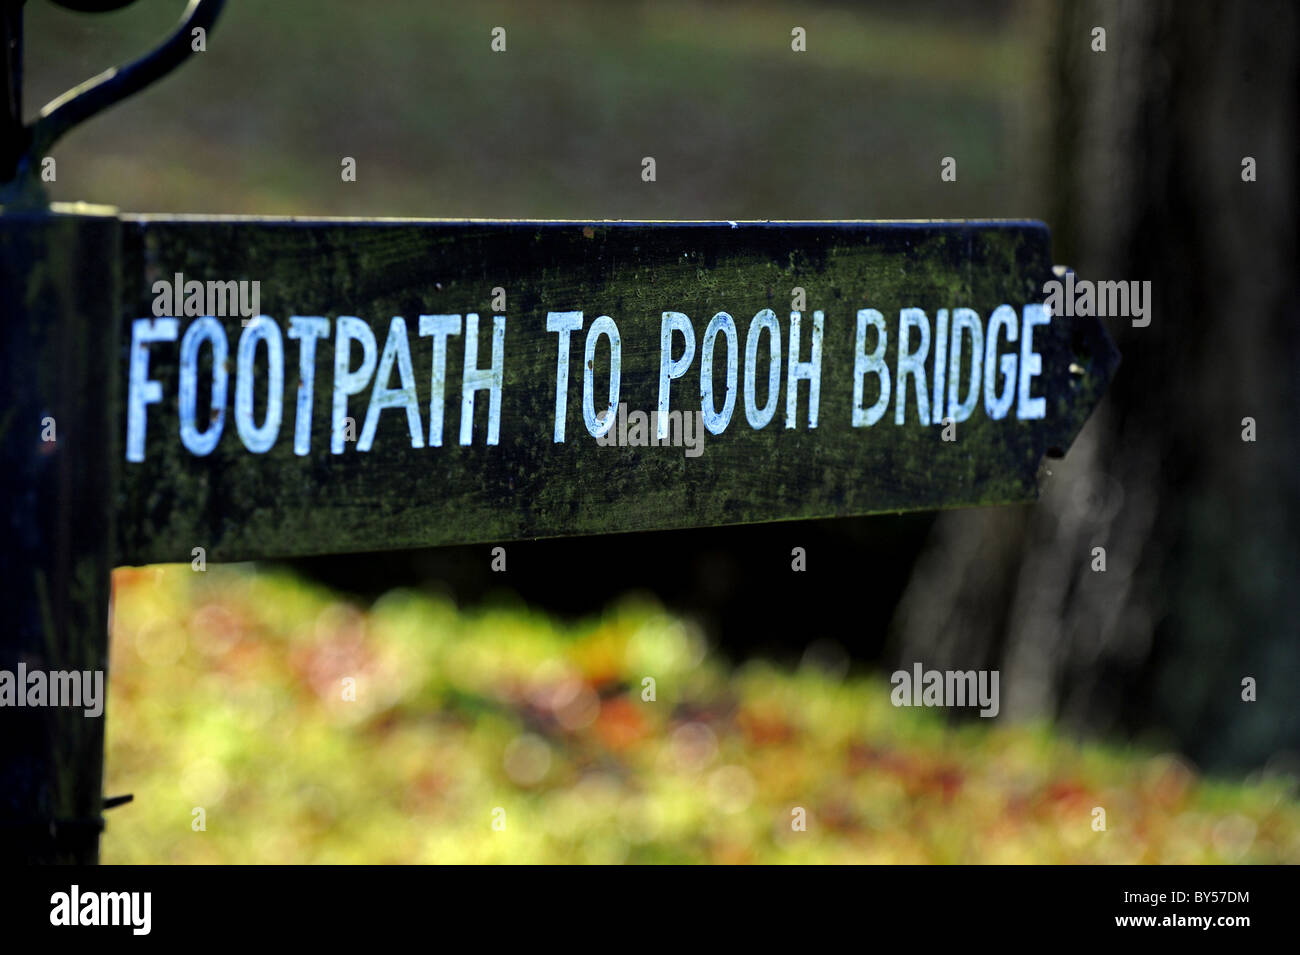 Sign for the footpath to Pooh Bridge in Hartfield - Stock Image